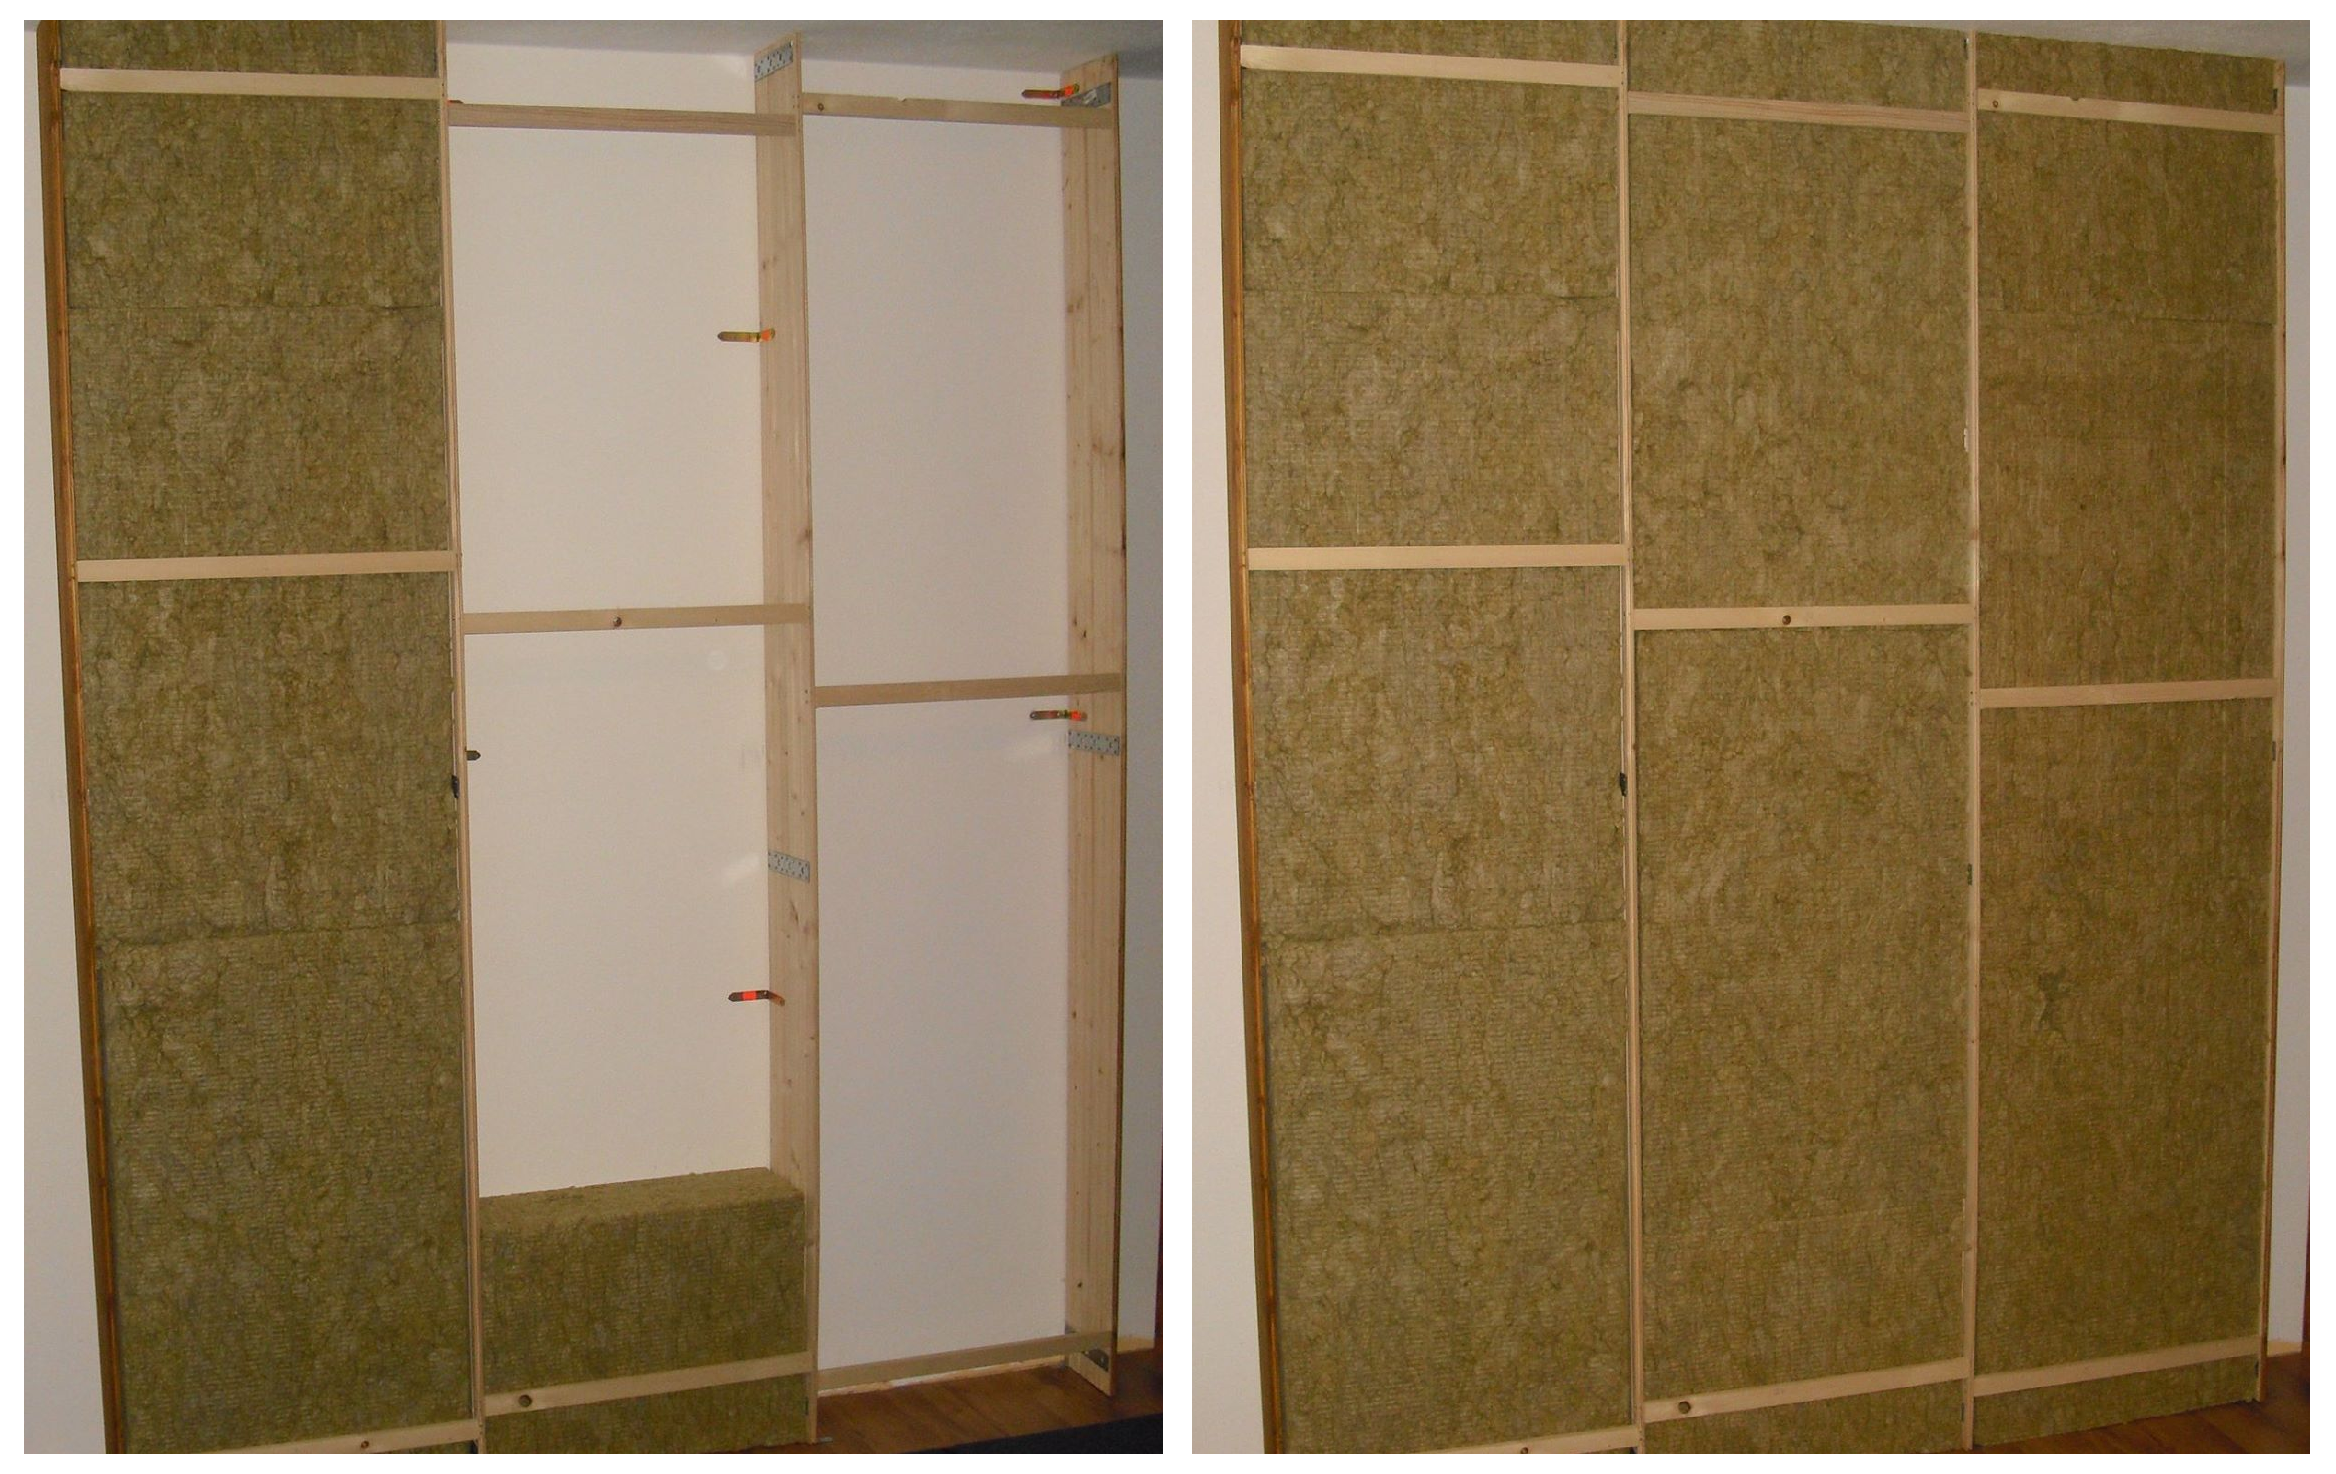 backwall panel insulation